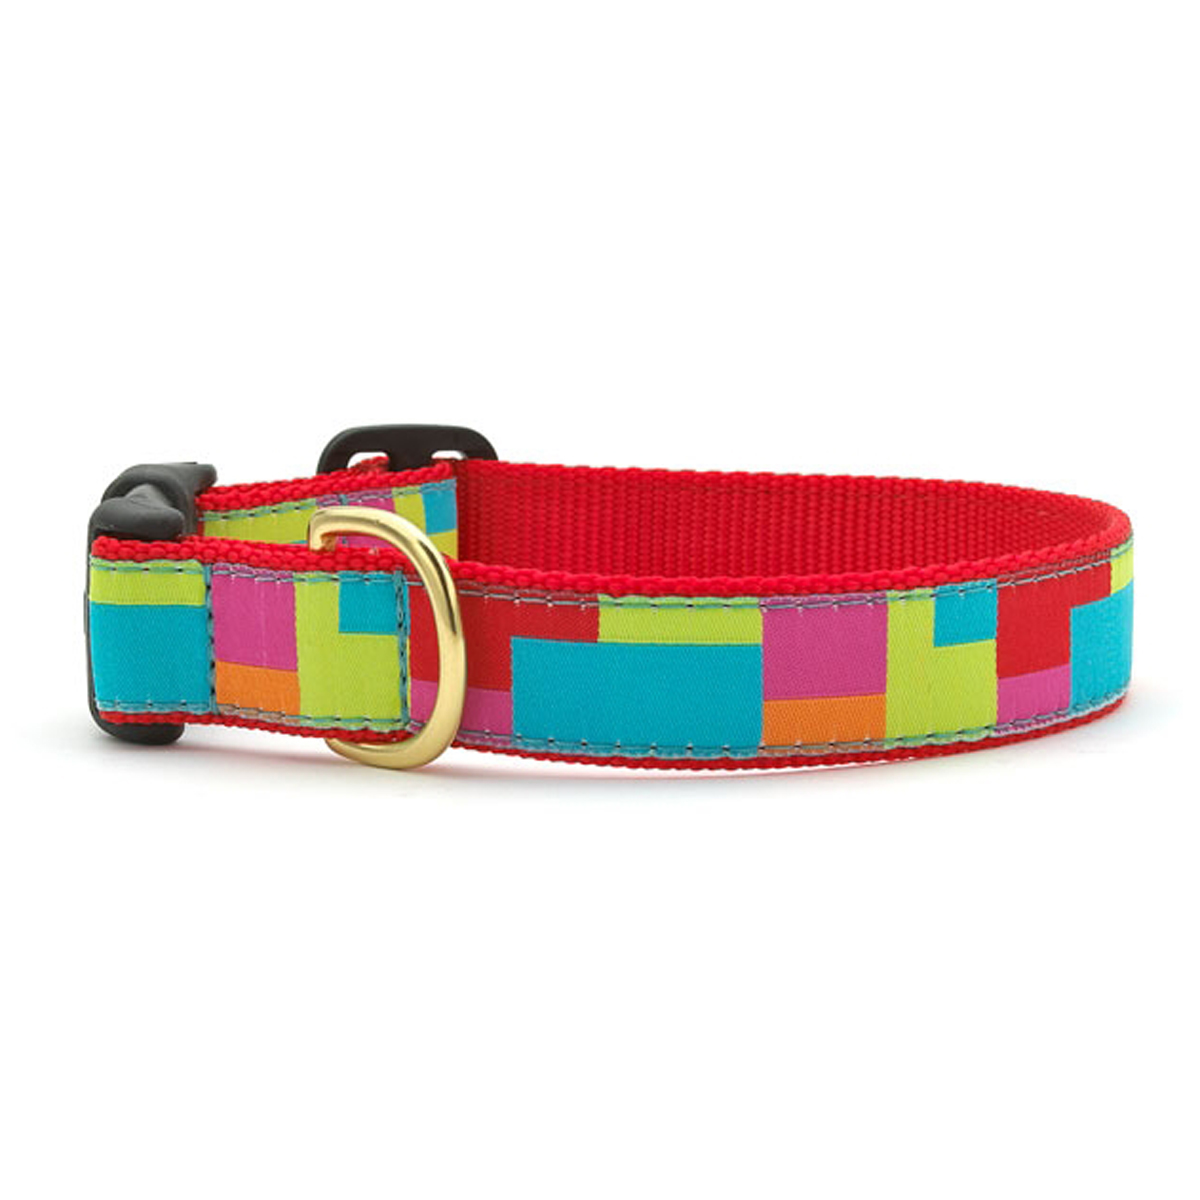 Color Block Dog Collar by Up Country